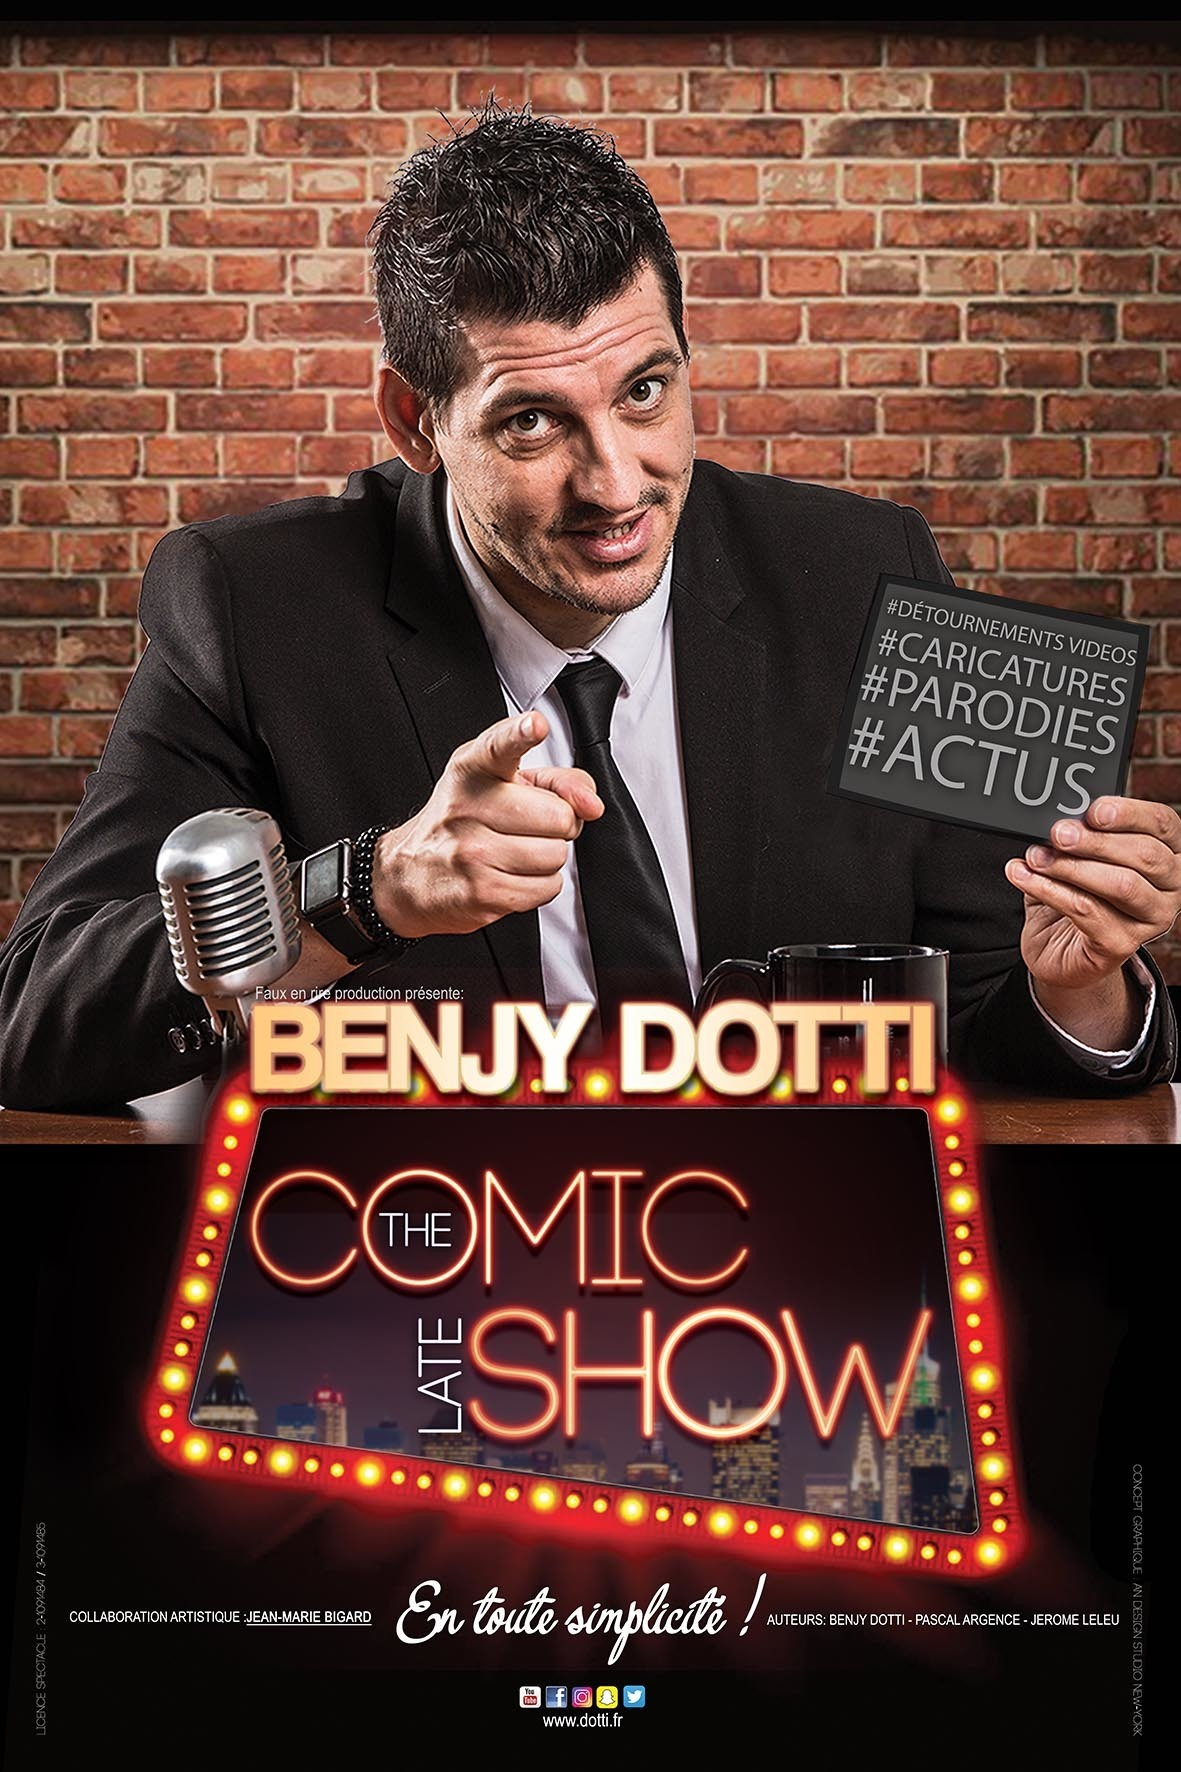 BENJY DOTTI - THE COMIC LATE SHOW SIX FOURS LES PLAGES